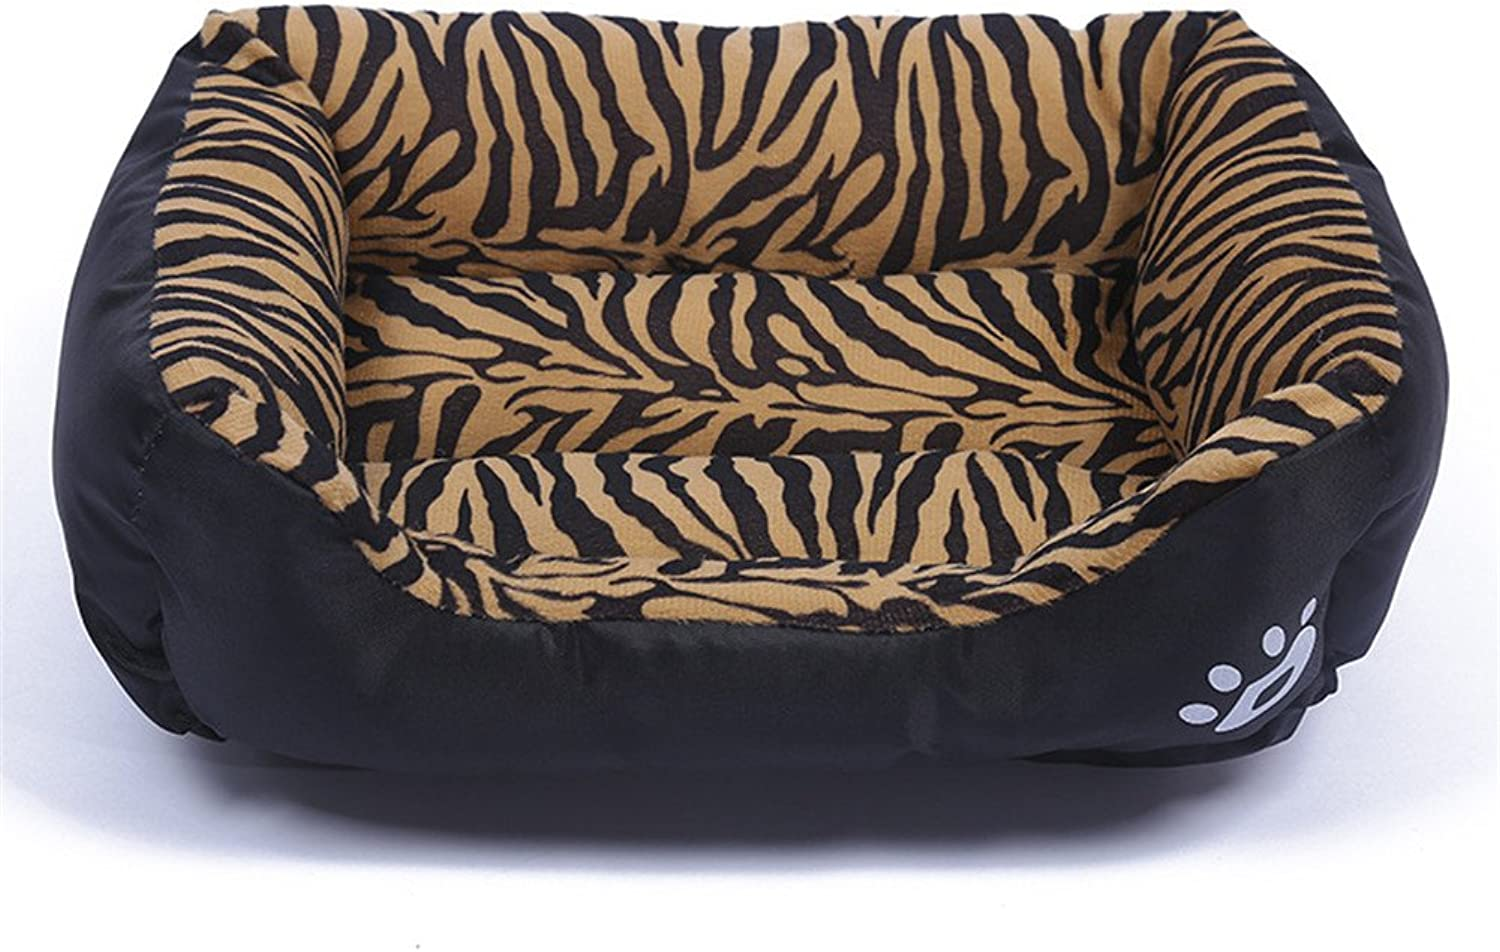 LXLP Kennel Doghouse Bed 2017 New Washable Premium Dog and Cat Bed PP Cotton  A Puppy and Kitty Dream BedsFour Seasons Common 12 Colour 6 Size (XL, Tiger Pattern)